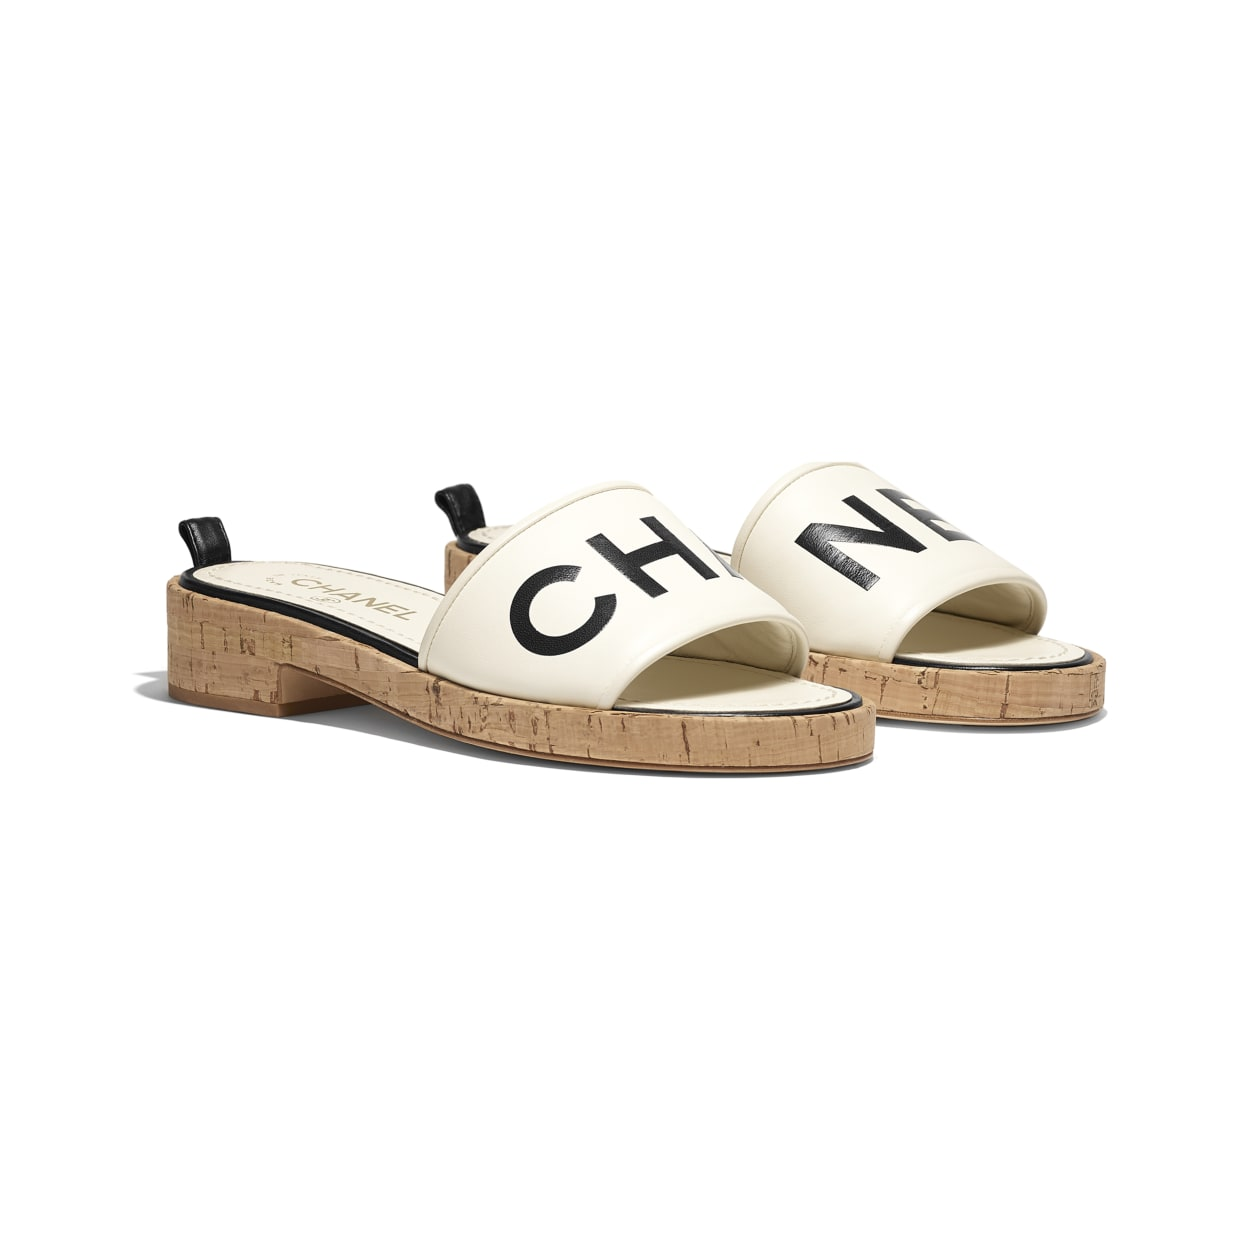 Chanel Sandals From Spring Summer 2019 Act 2 Collection Spotted Fashion